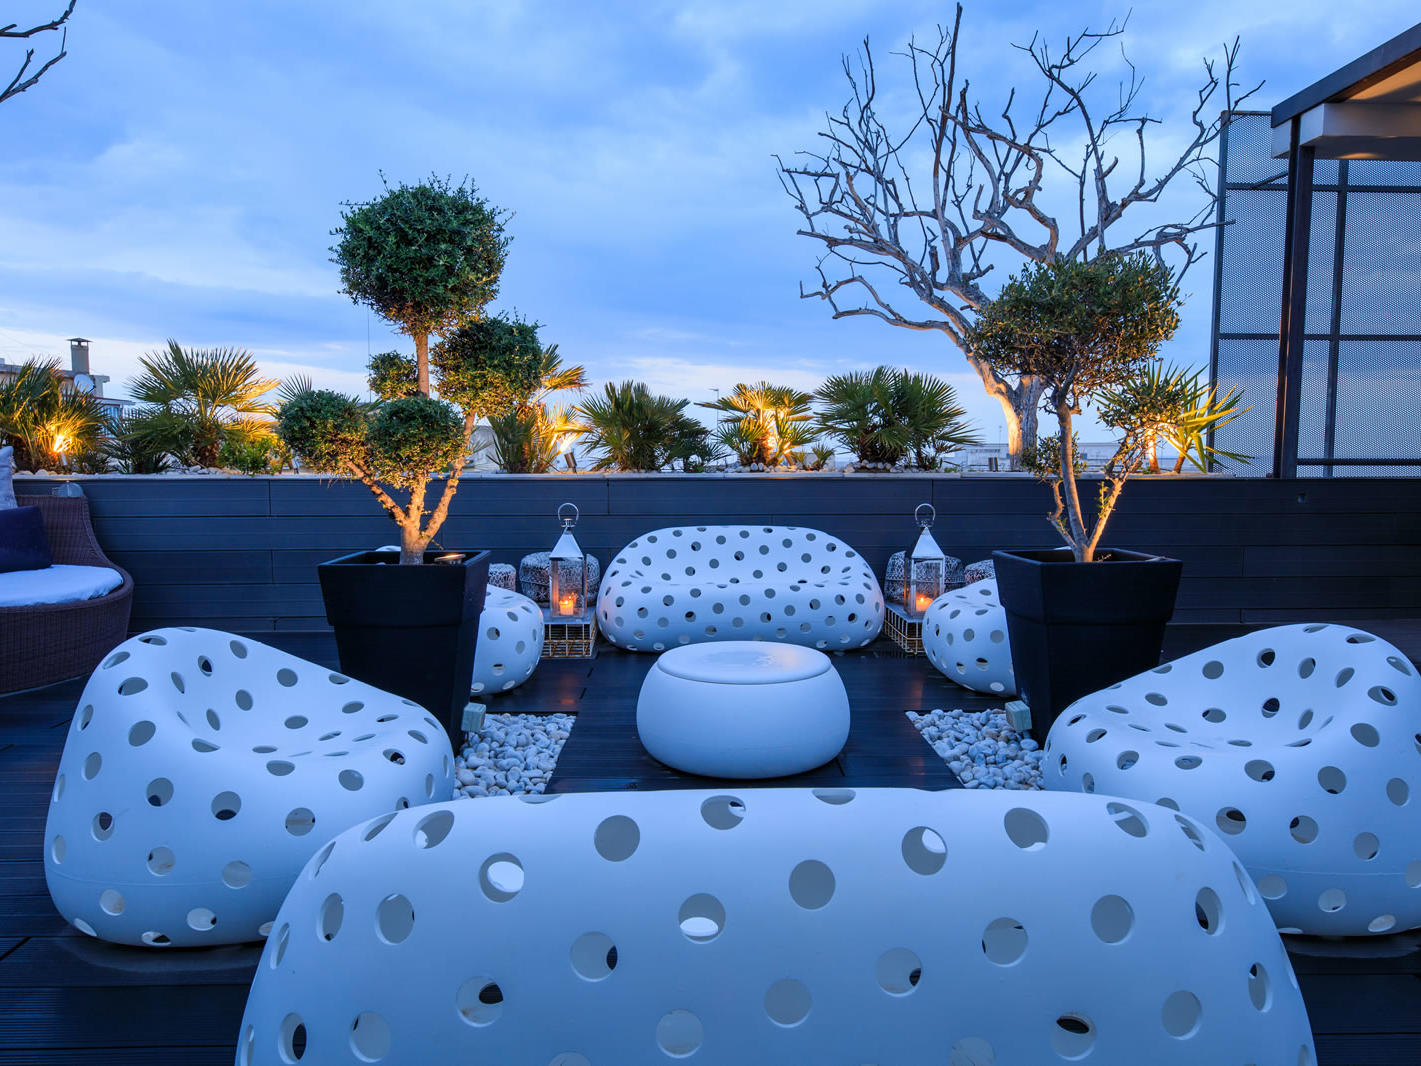 Sky Roof | UNAHOTELS One Siracusa